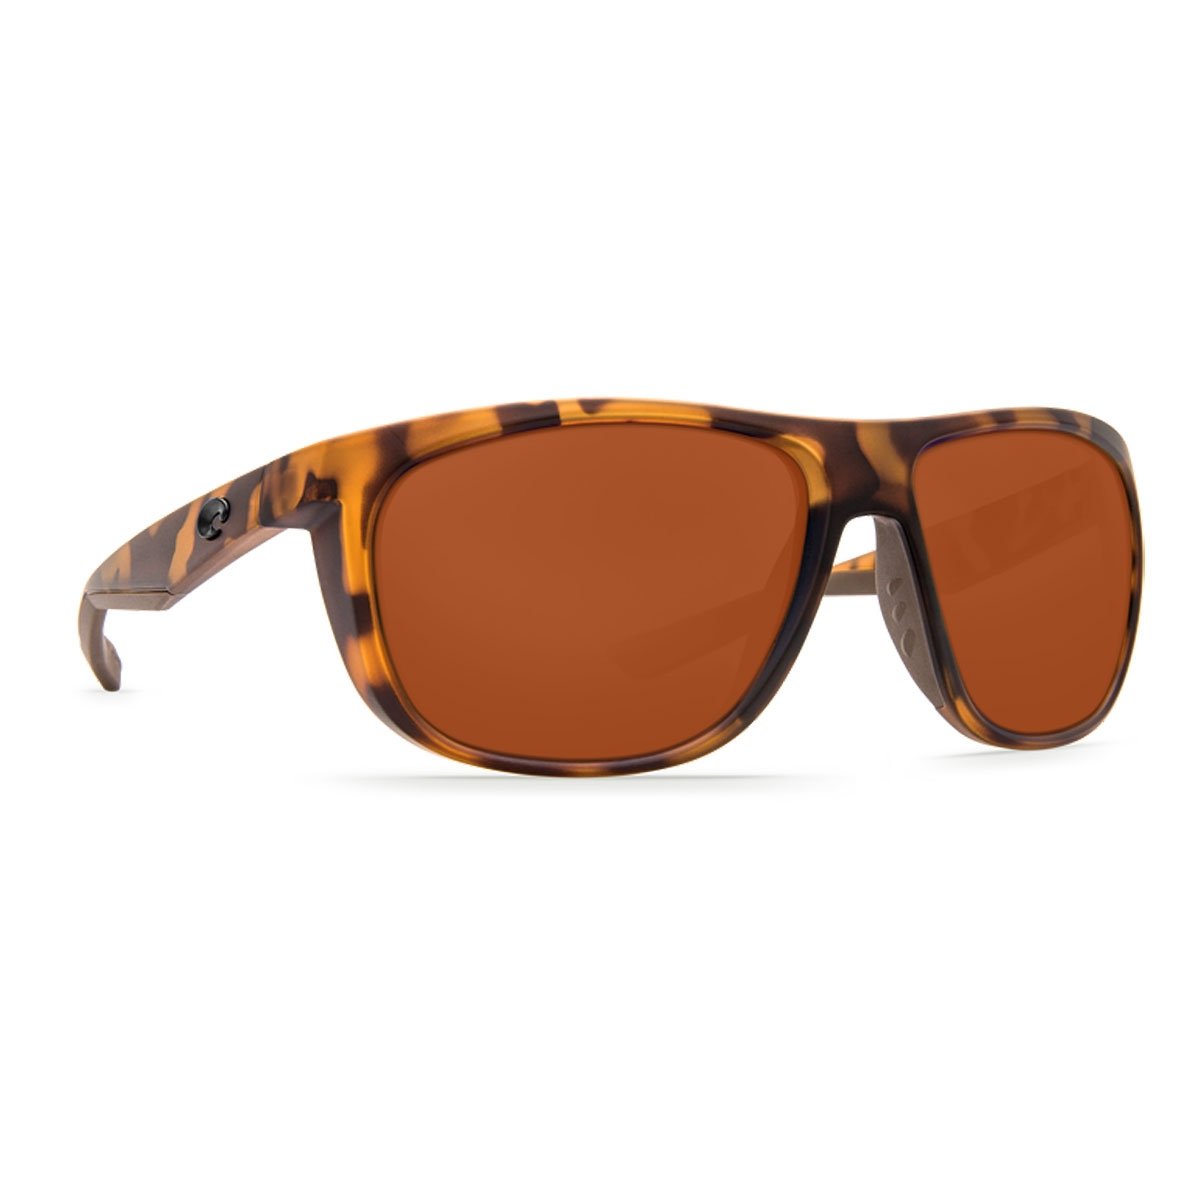 bdfb09027f7 Image of Costa Del Mar Kiwa Retro Sunglasses - Tortoise Frame   Copper P  Lens